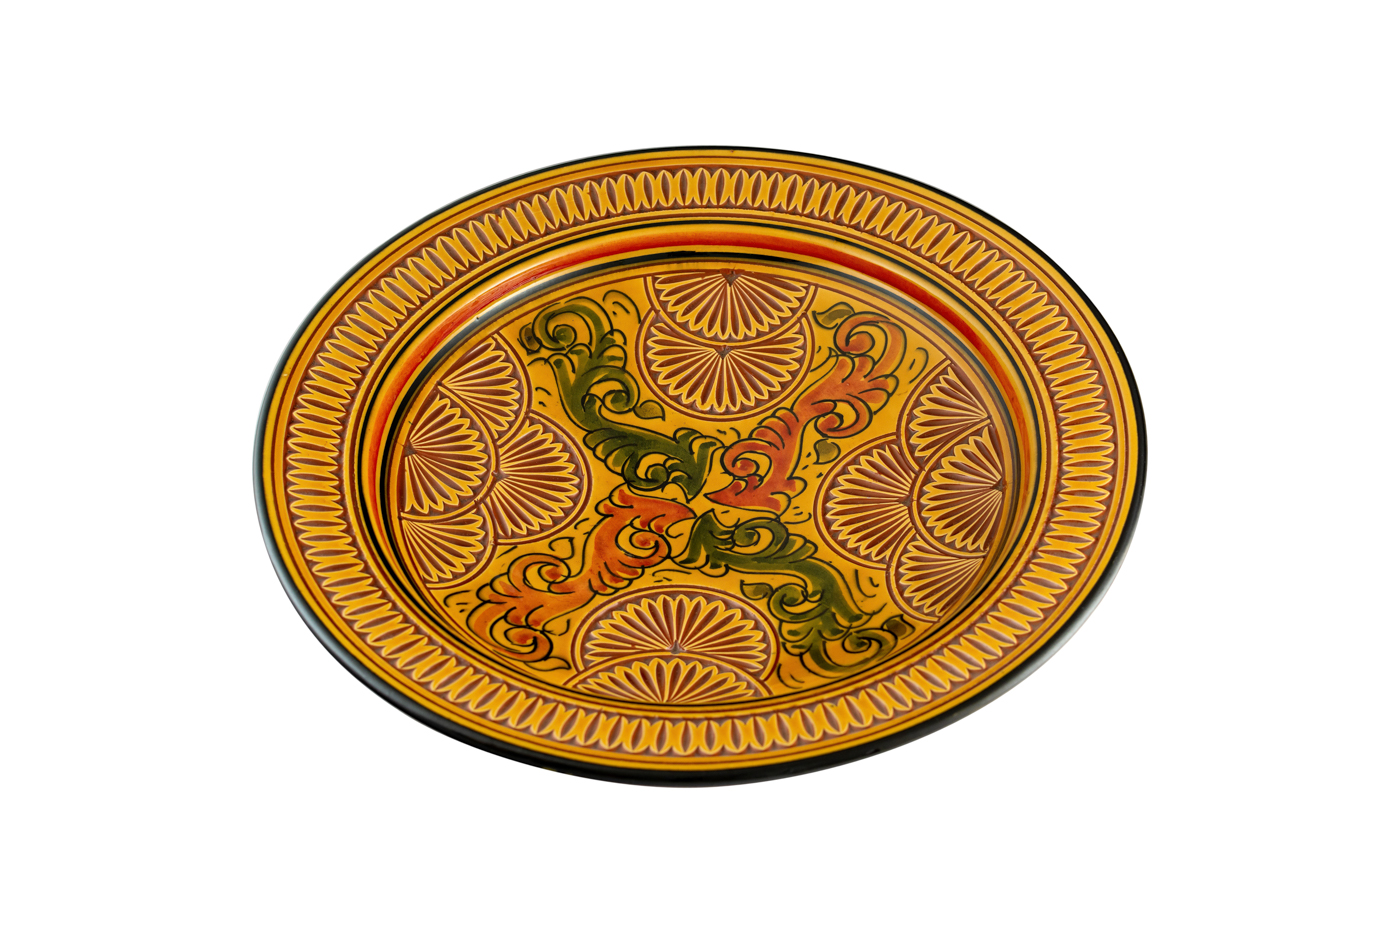 Moroccan carved ceramic plate with floral arabesque designs - Yellow/Orange